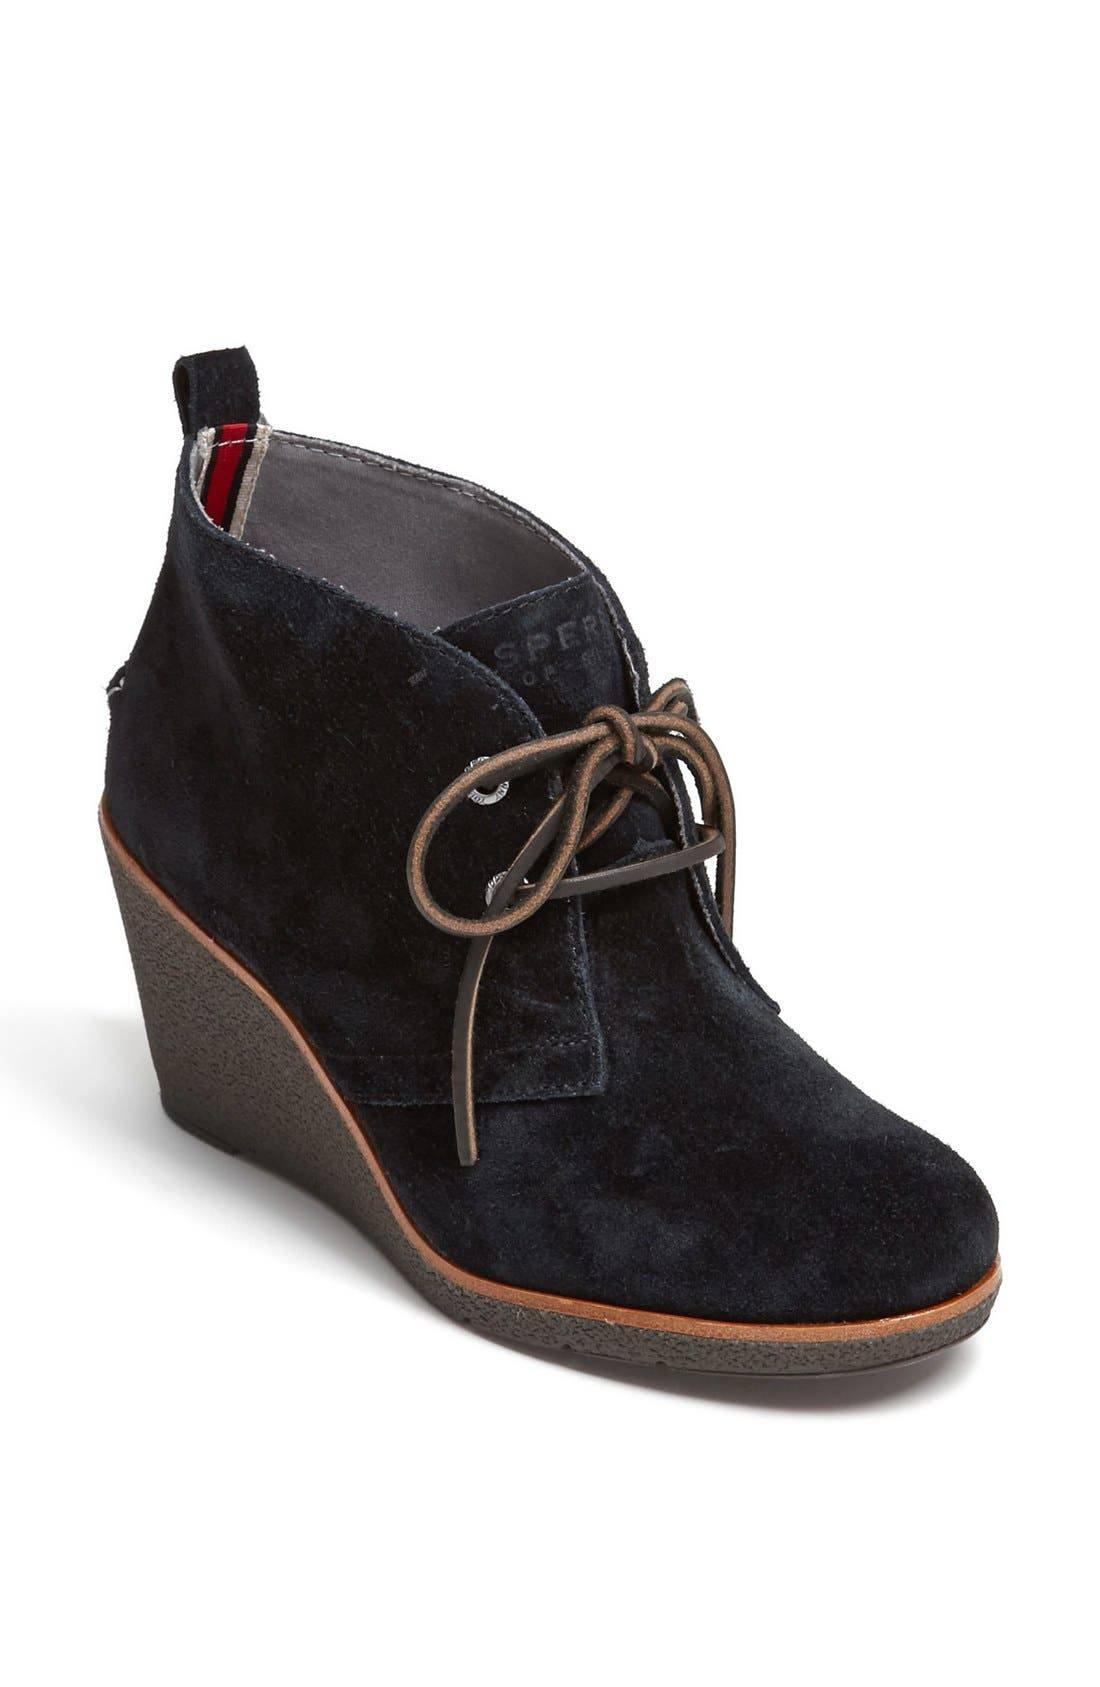 Main Image - Sperry Top Sider® 'Harlow' Bootie